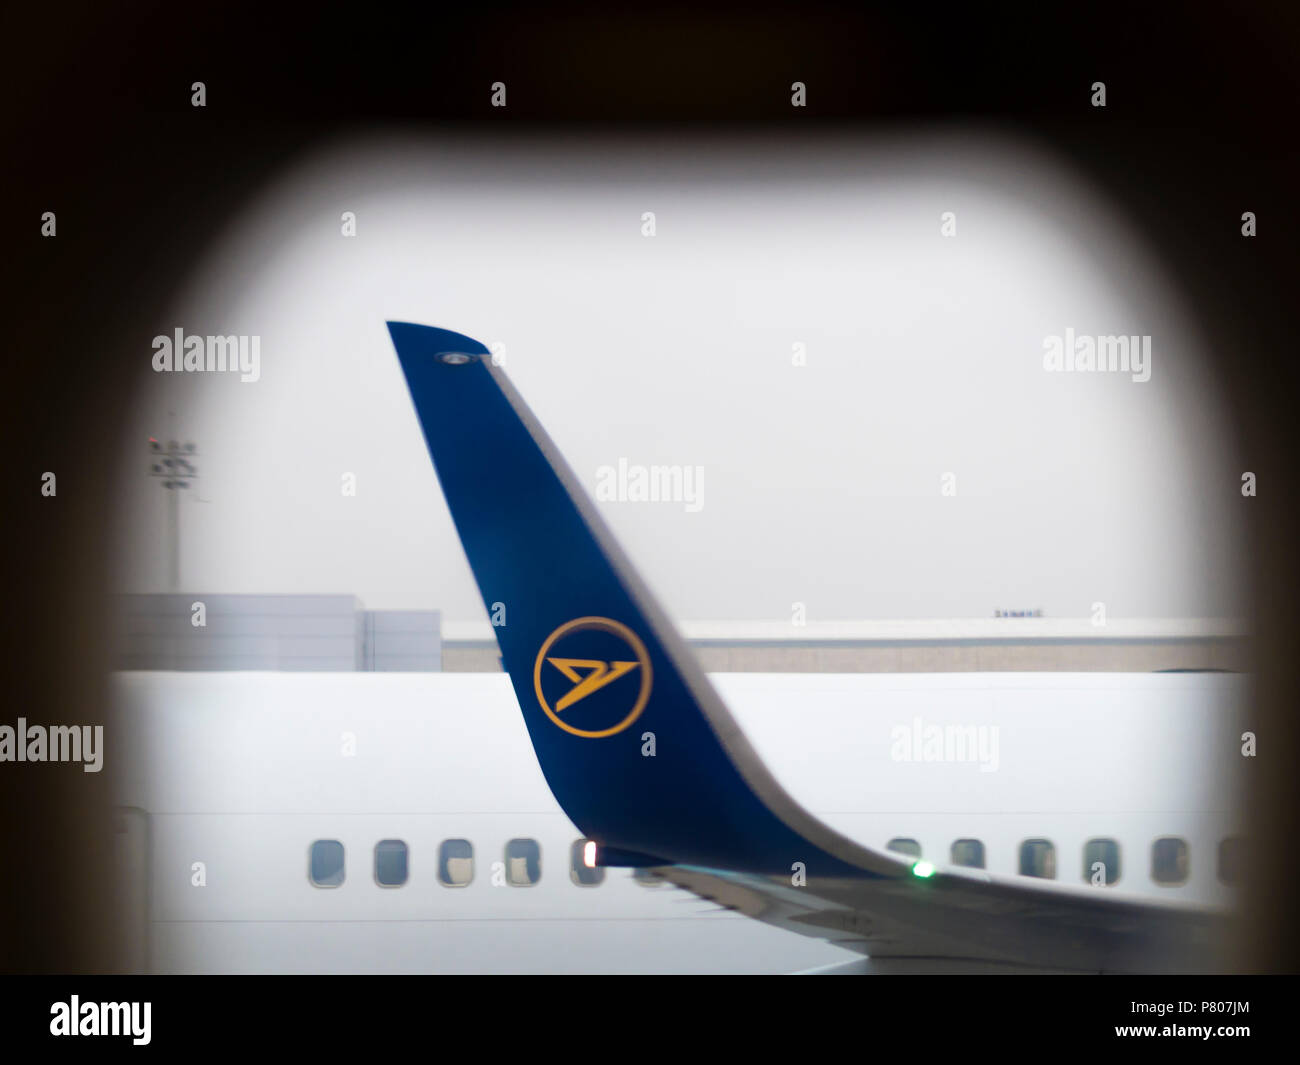 Winglet of a Boeing 767-300ER aircraft of German airline Condor, seen through the window of an aircraft parked nearby. - Stock Image